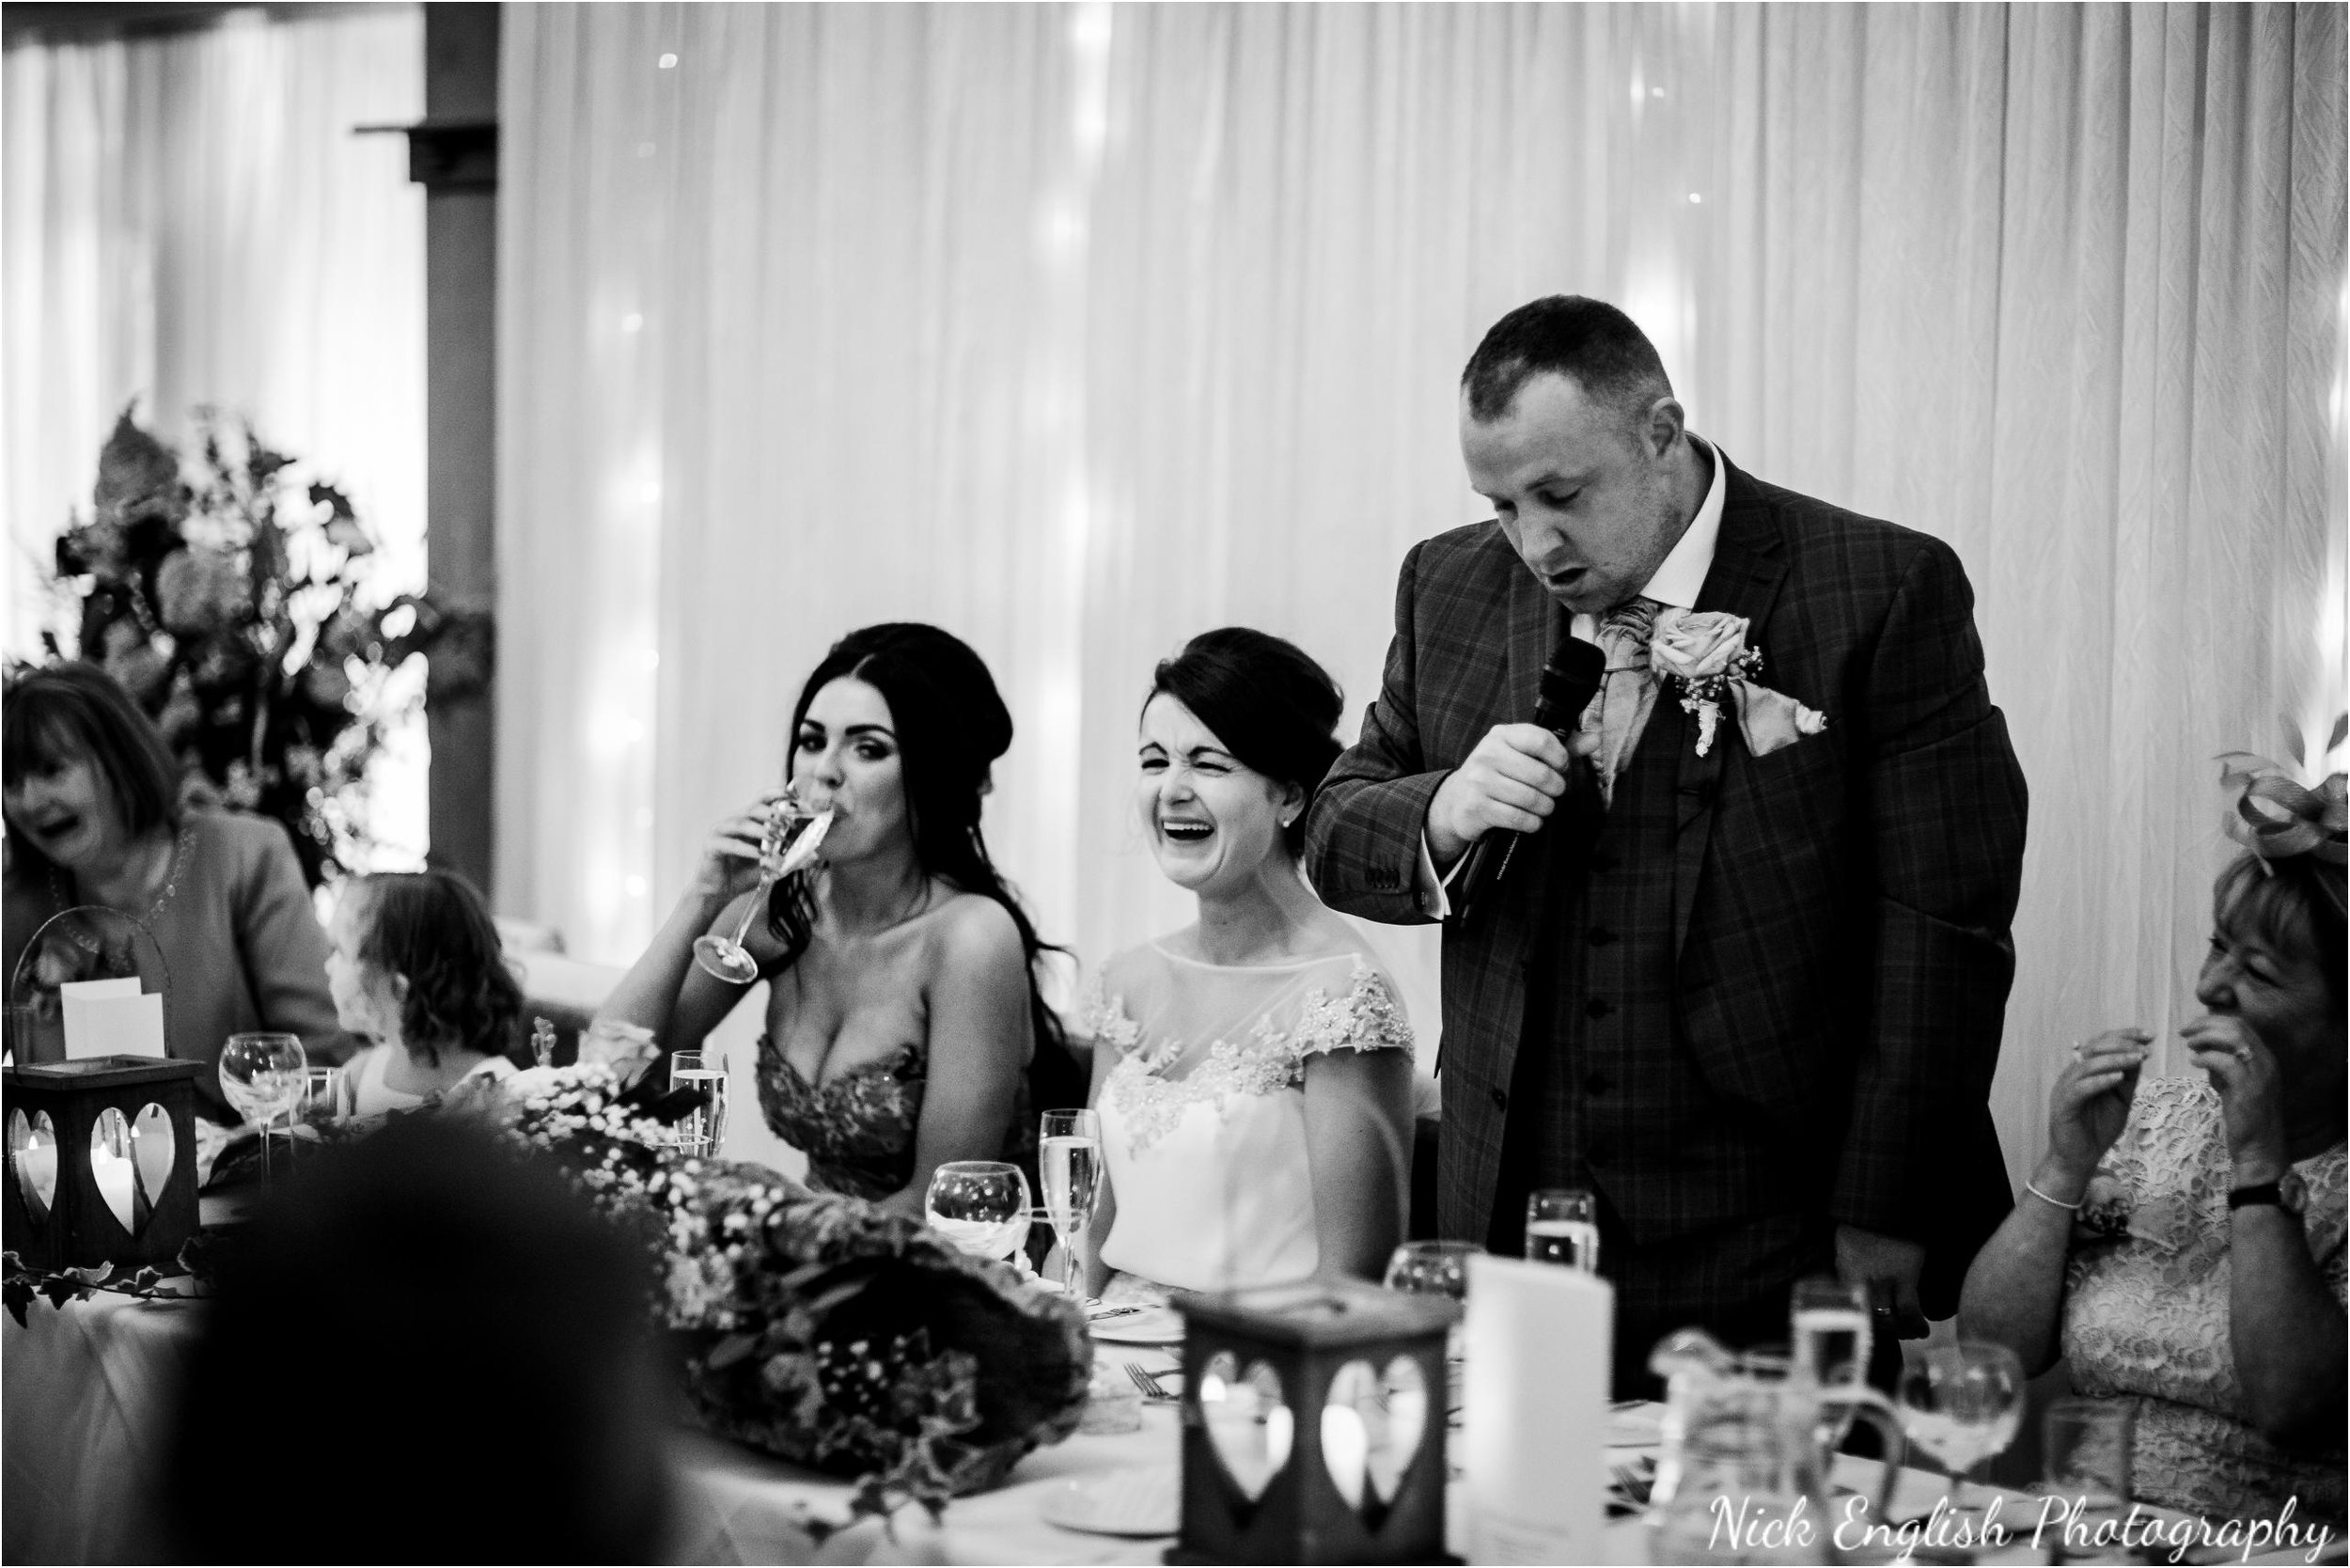 Stacey-Ash-Wedding-Photographs-Stanley-House-Preston-Lancashire-165.jpg